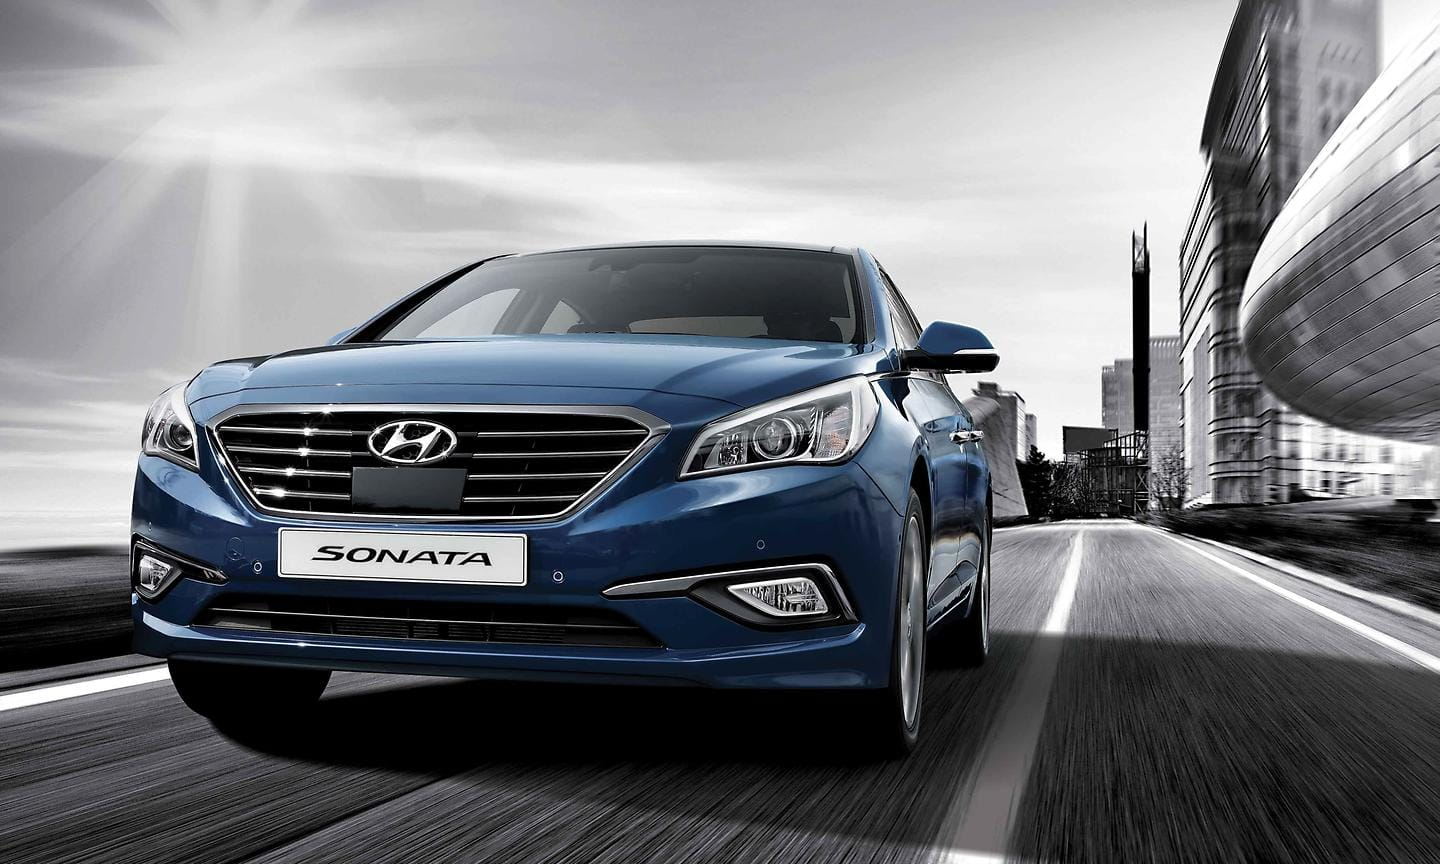 All New Sonata in motion